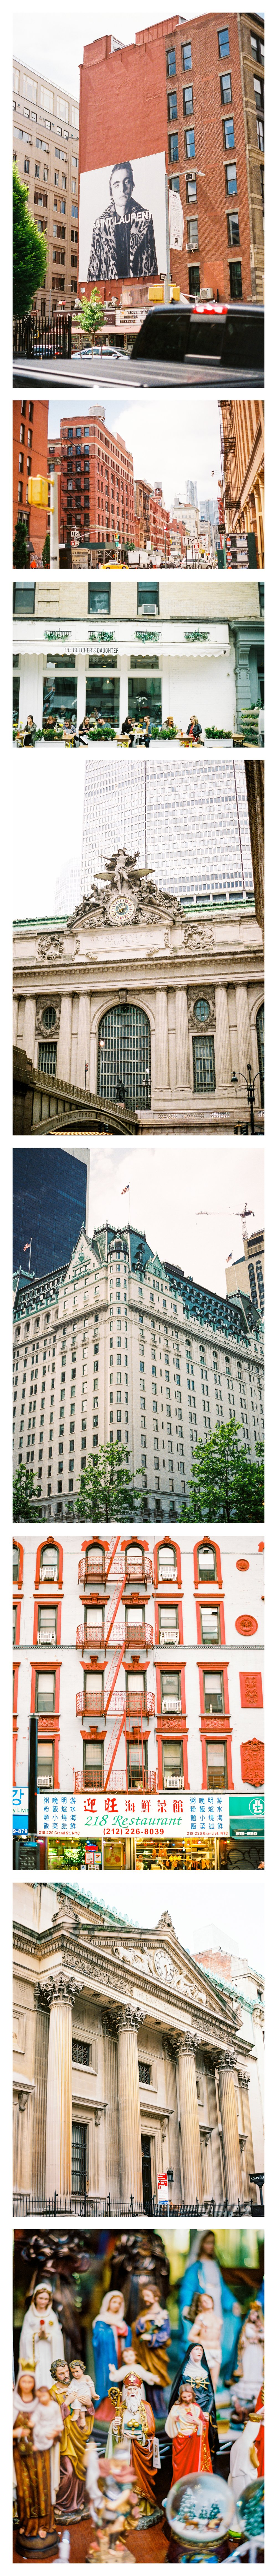 nyc-manhattan-new-york-soho-tribeca-travel-film-photographer-photos